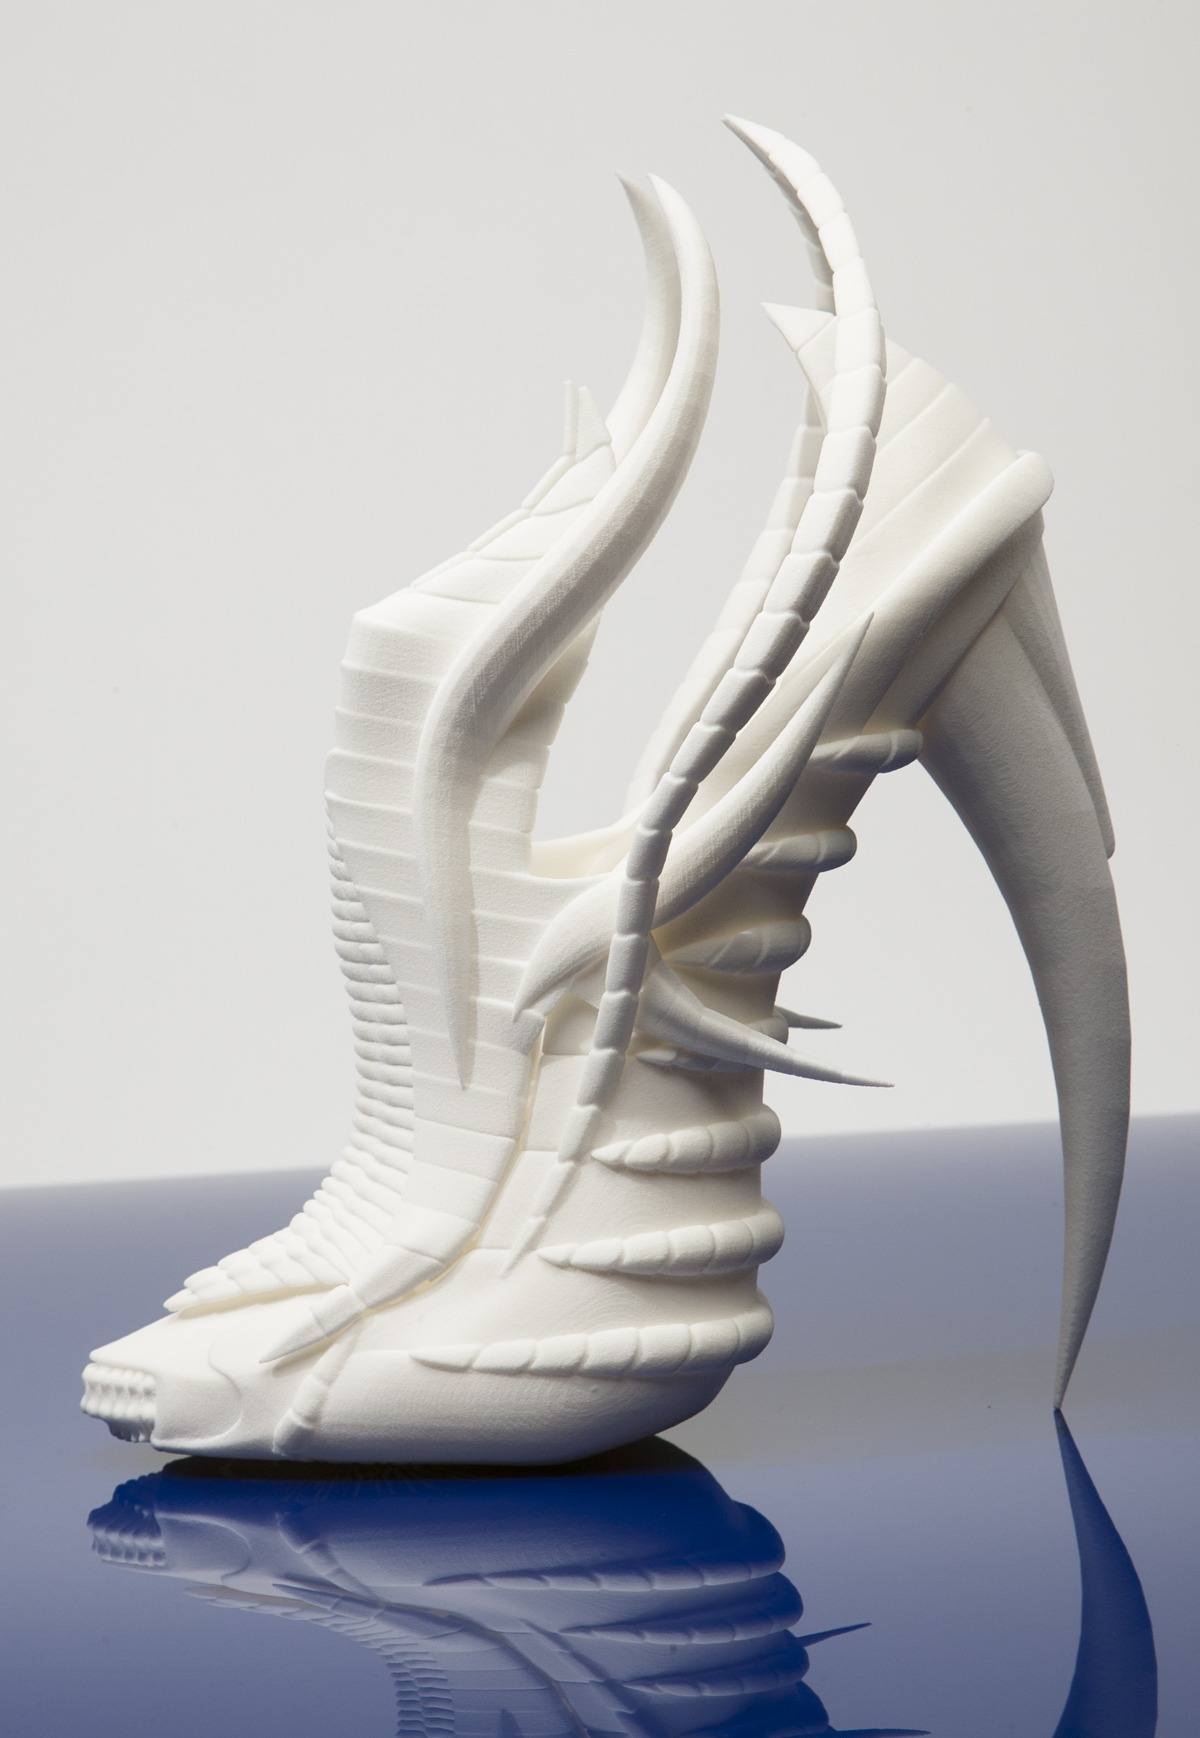 Sexy Cool 3D Printed Shoes By Janina Alleyne